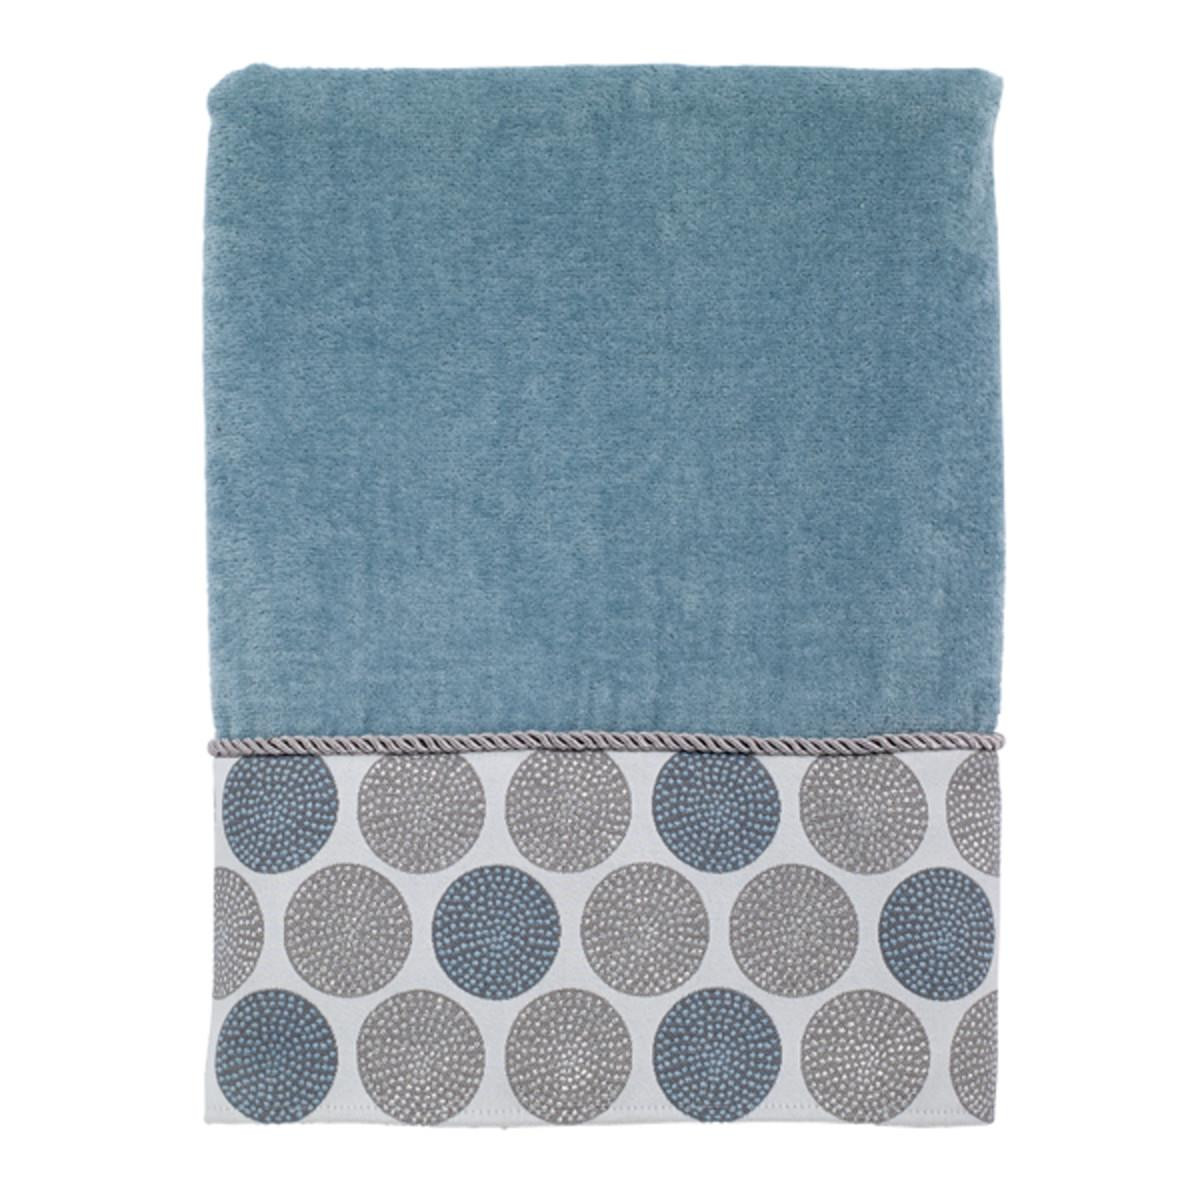 Dotted Circles Bath Collection -